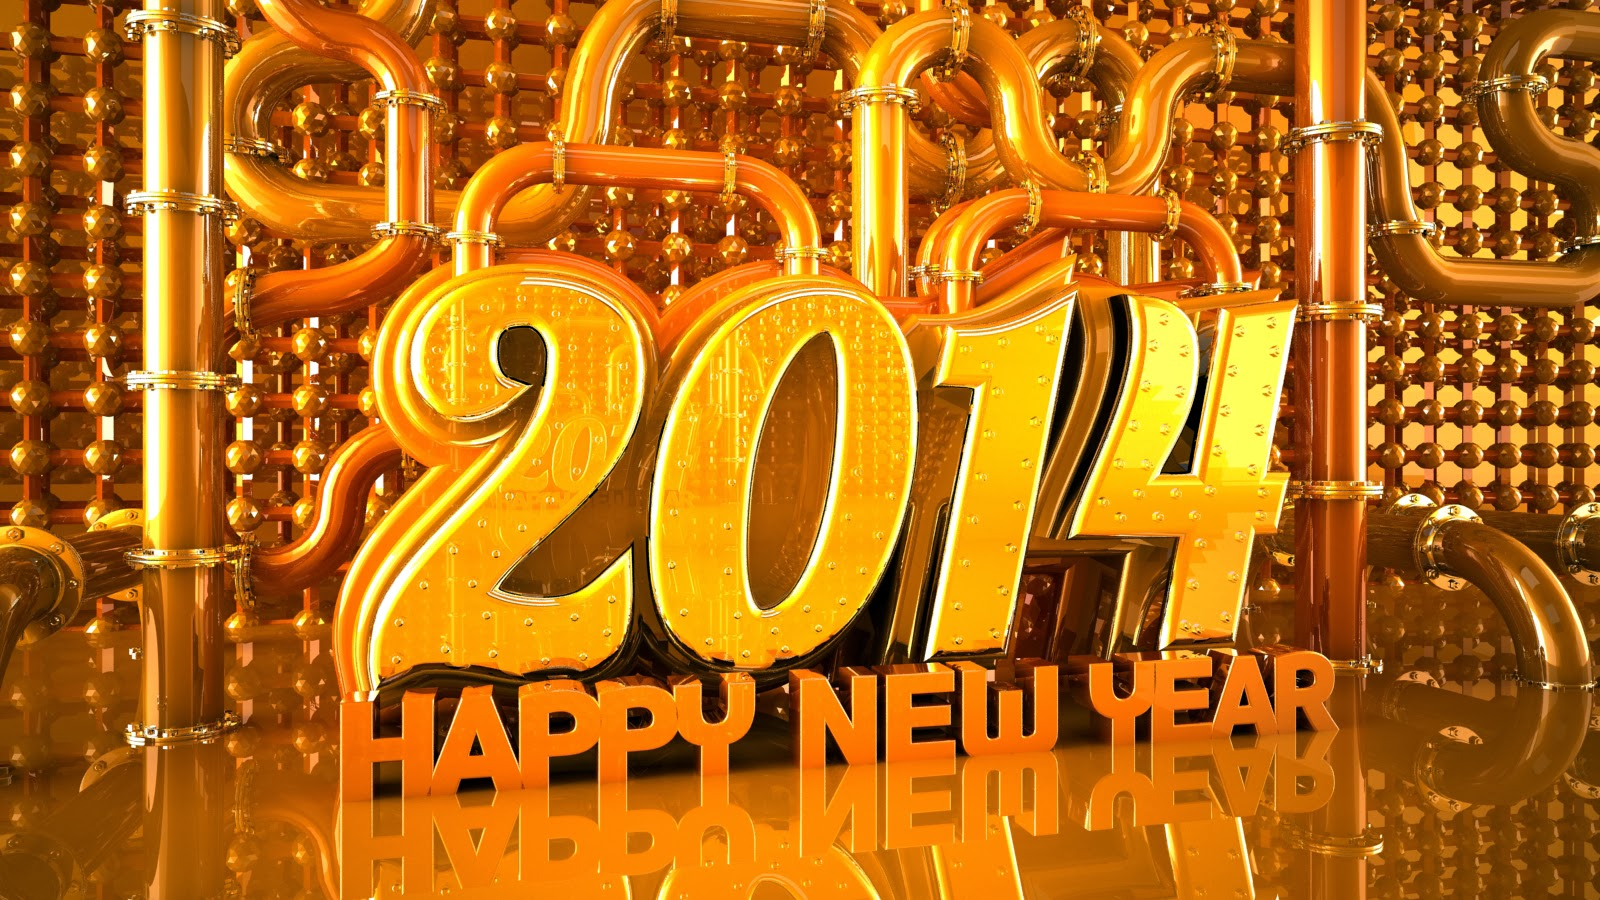 happy new year 2014 screensavers download 1600x900